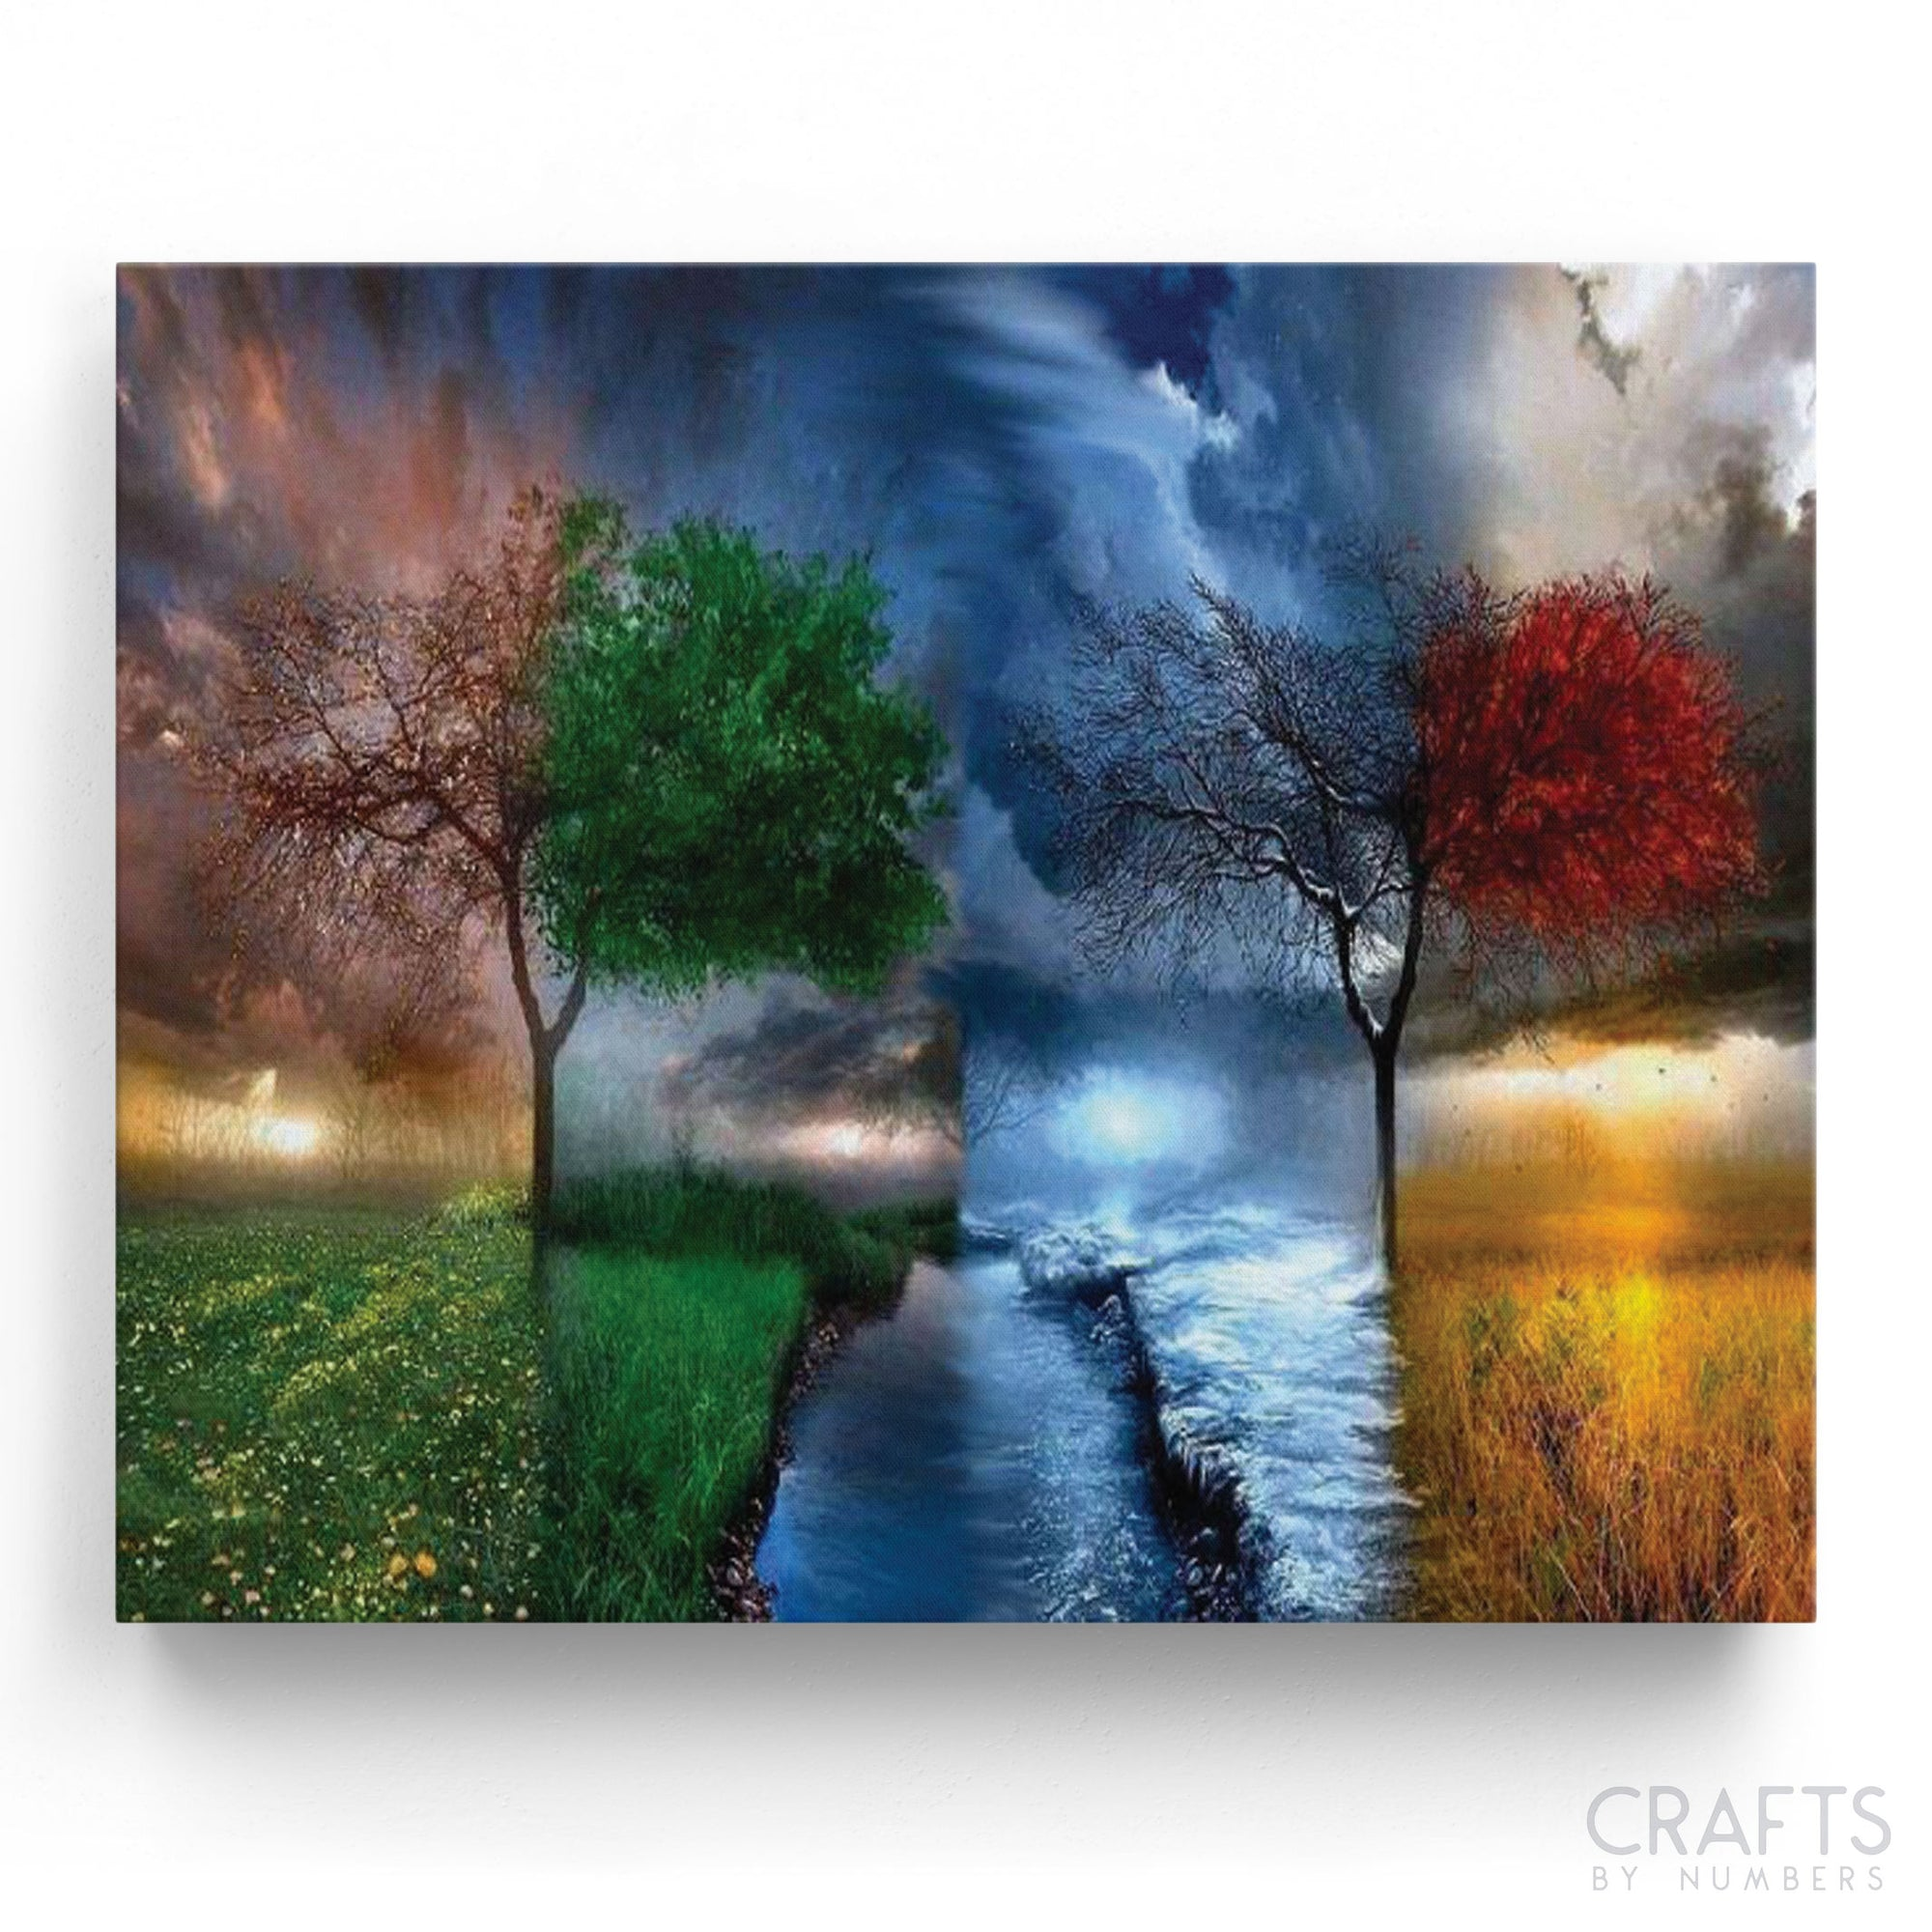 Rotating Seasons paint by numbers canvas for adults from paint pots